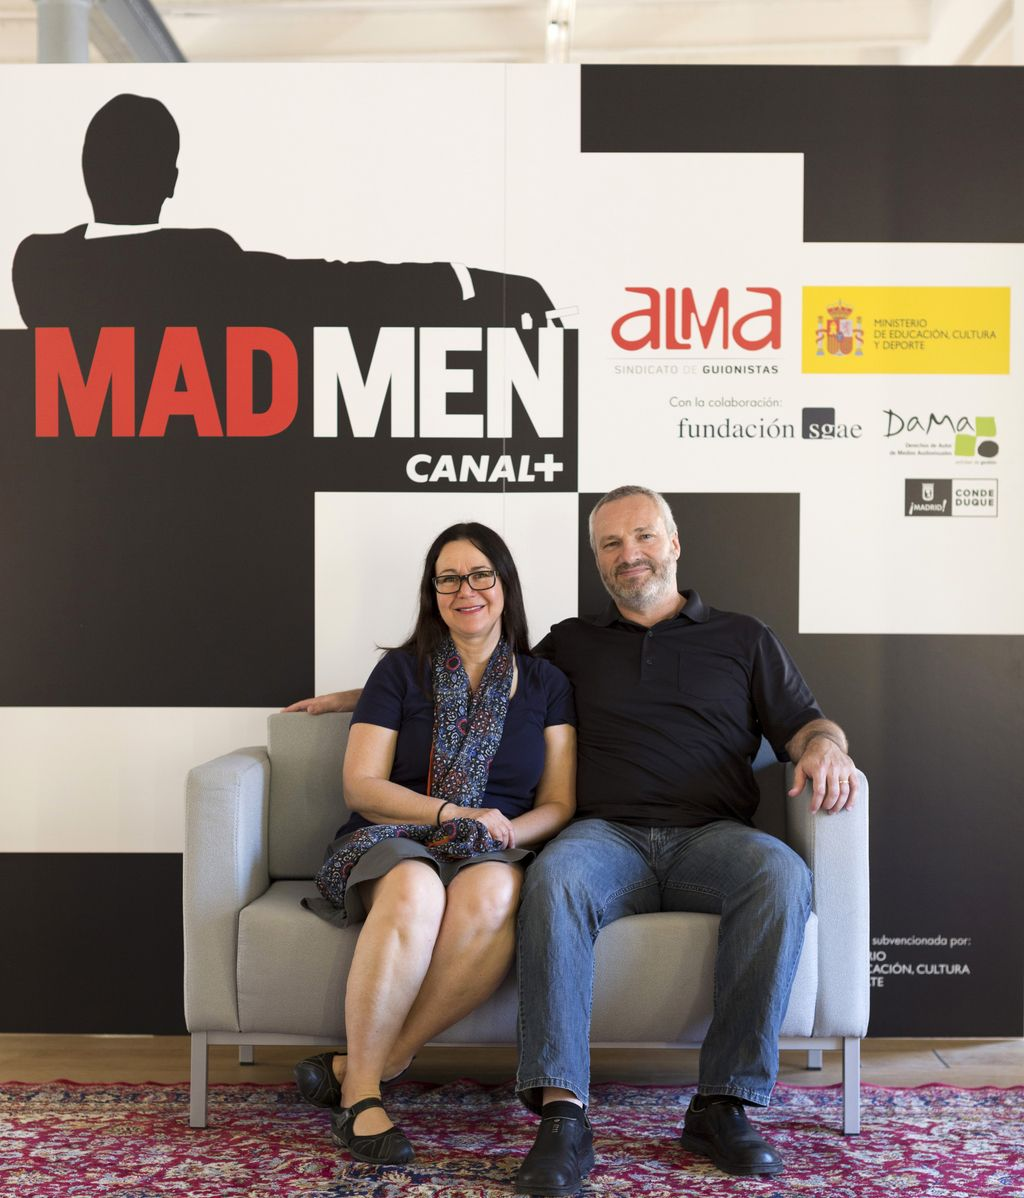 Guionistas de Mad men